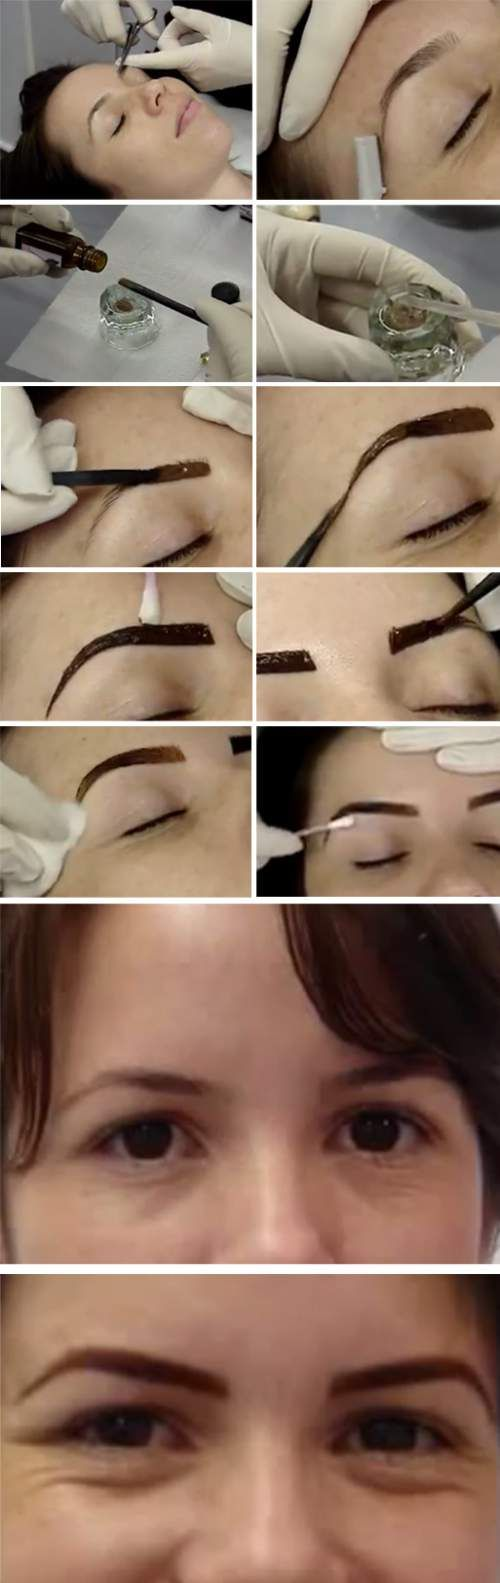 Right Way To Use Henna For Eyebrow Dye Body Beauty Pinterest